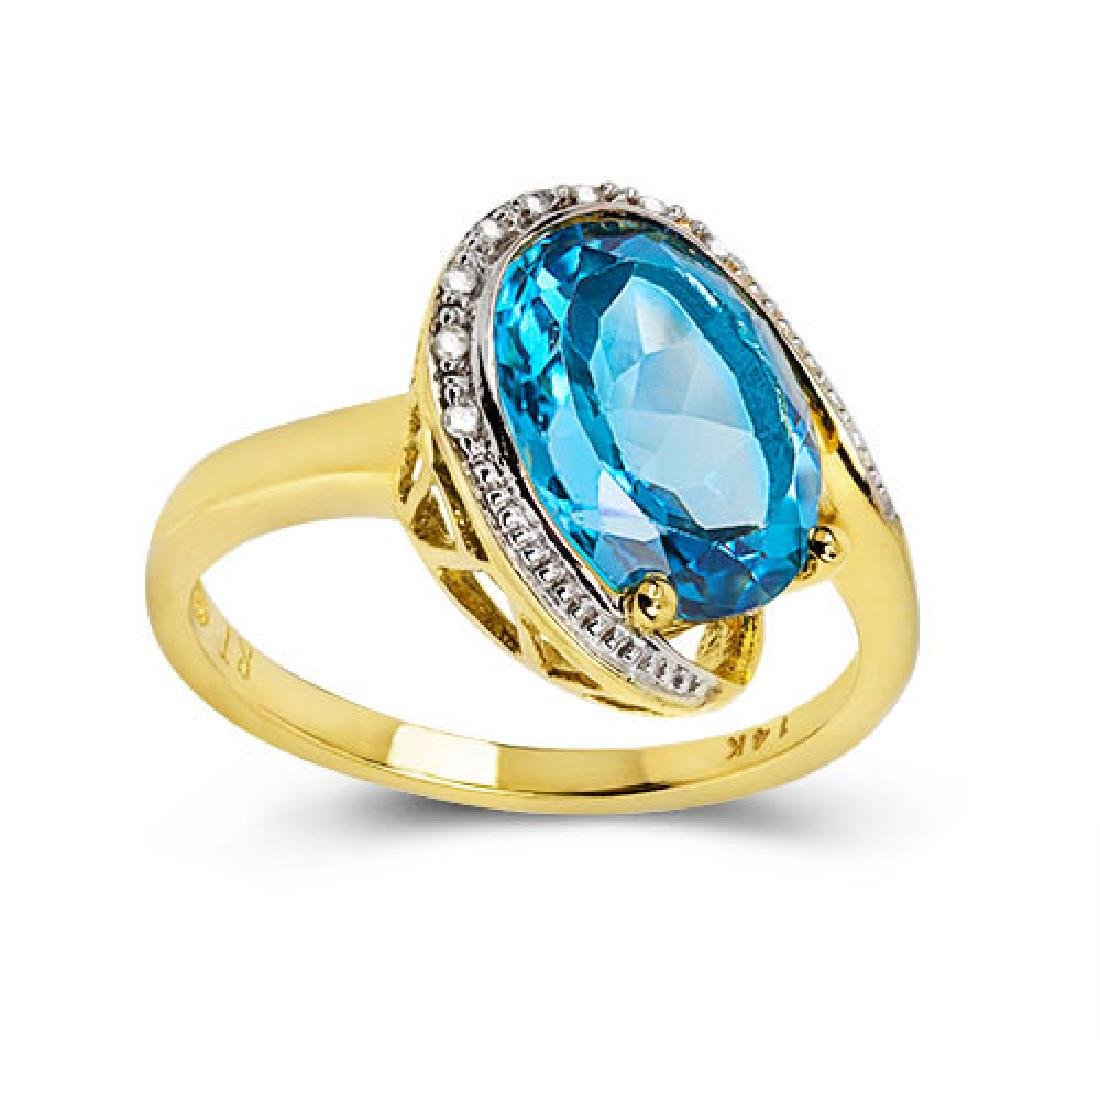 14K WHITE GOLD LONDON BLUE TOPAZ 4.4CT RING WITH - 3